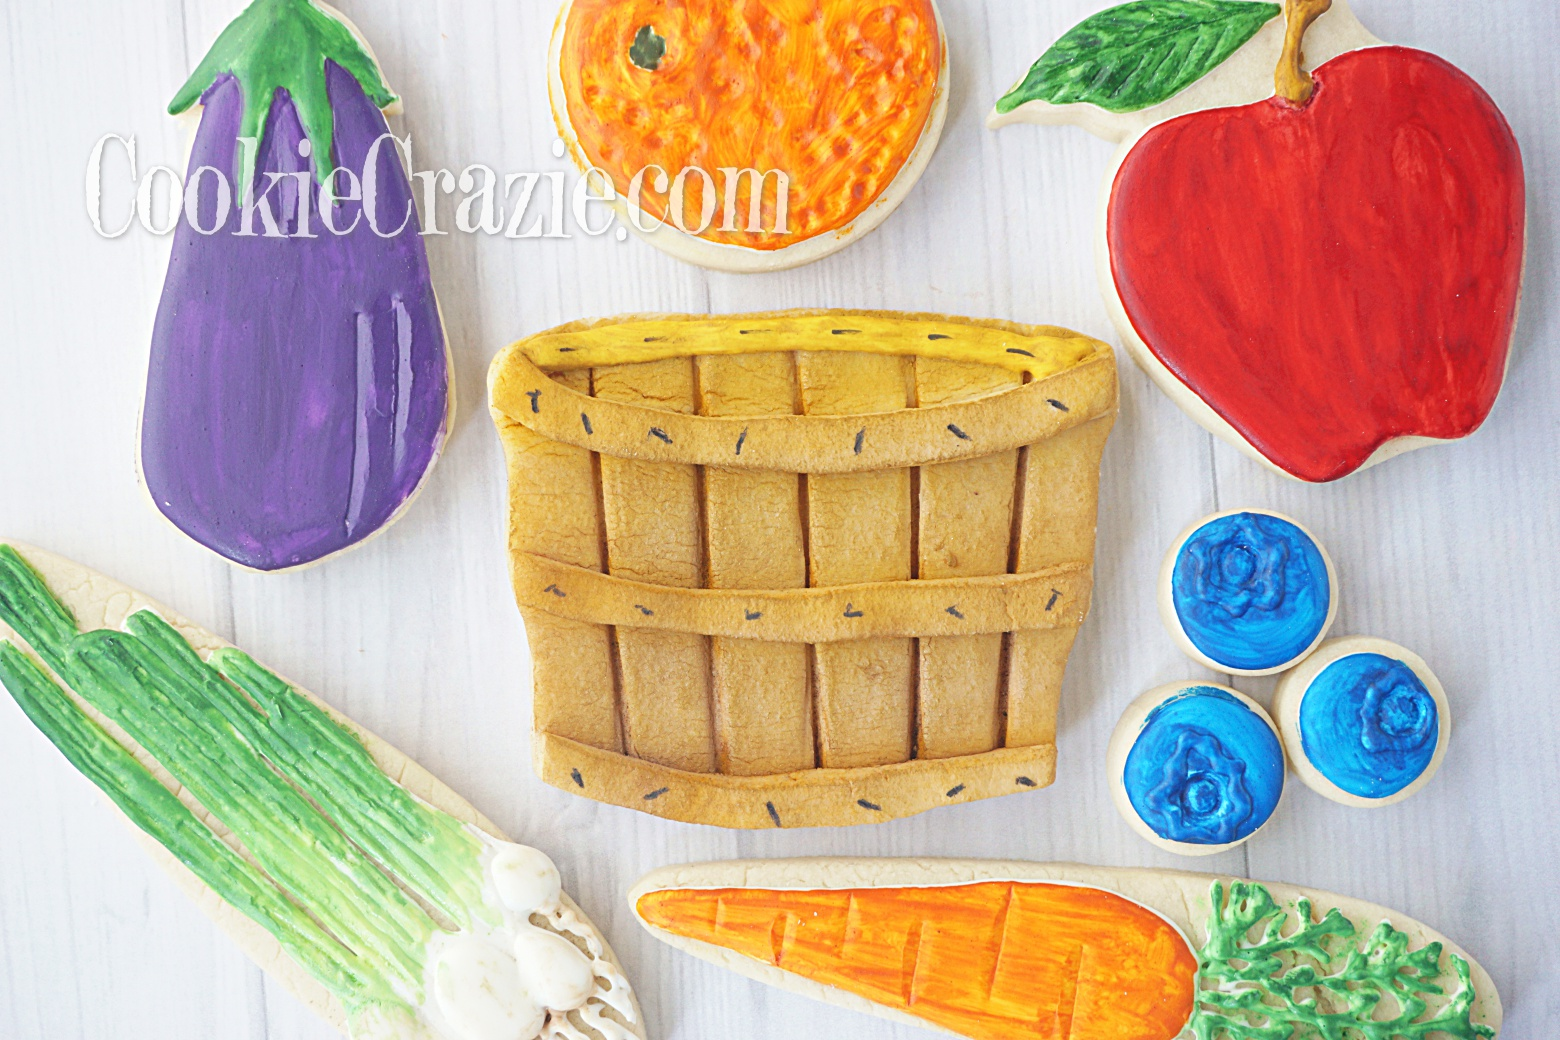 Bushel Basket Decorated Sugar Cookie YouTube video  HERE